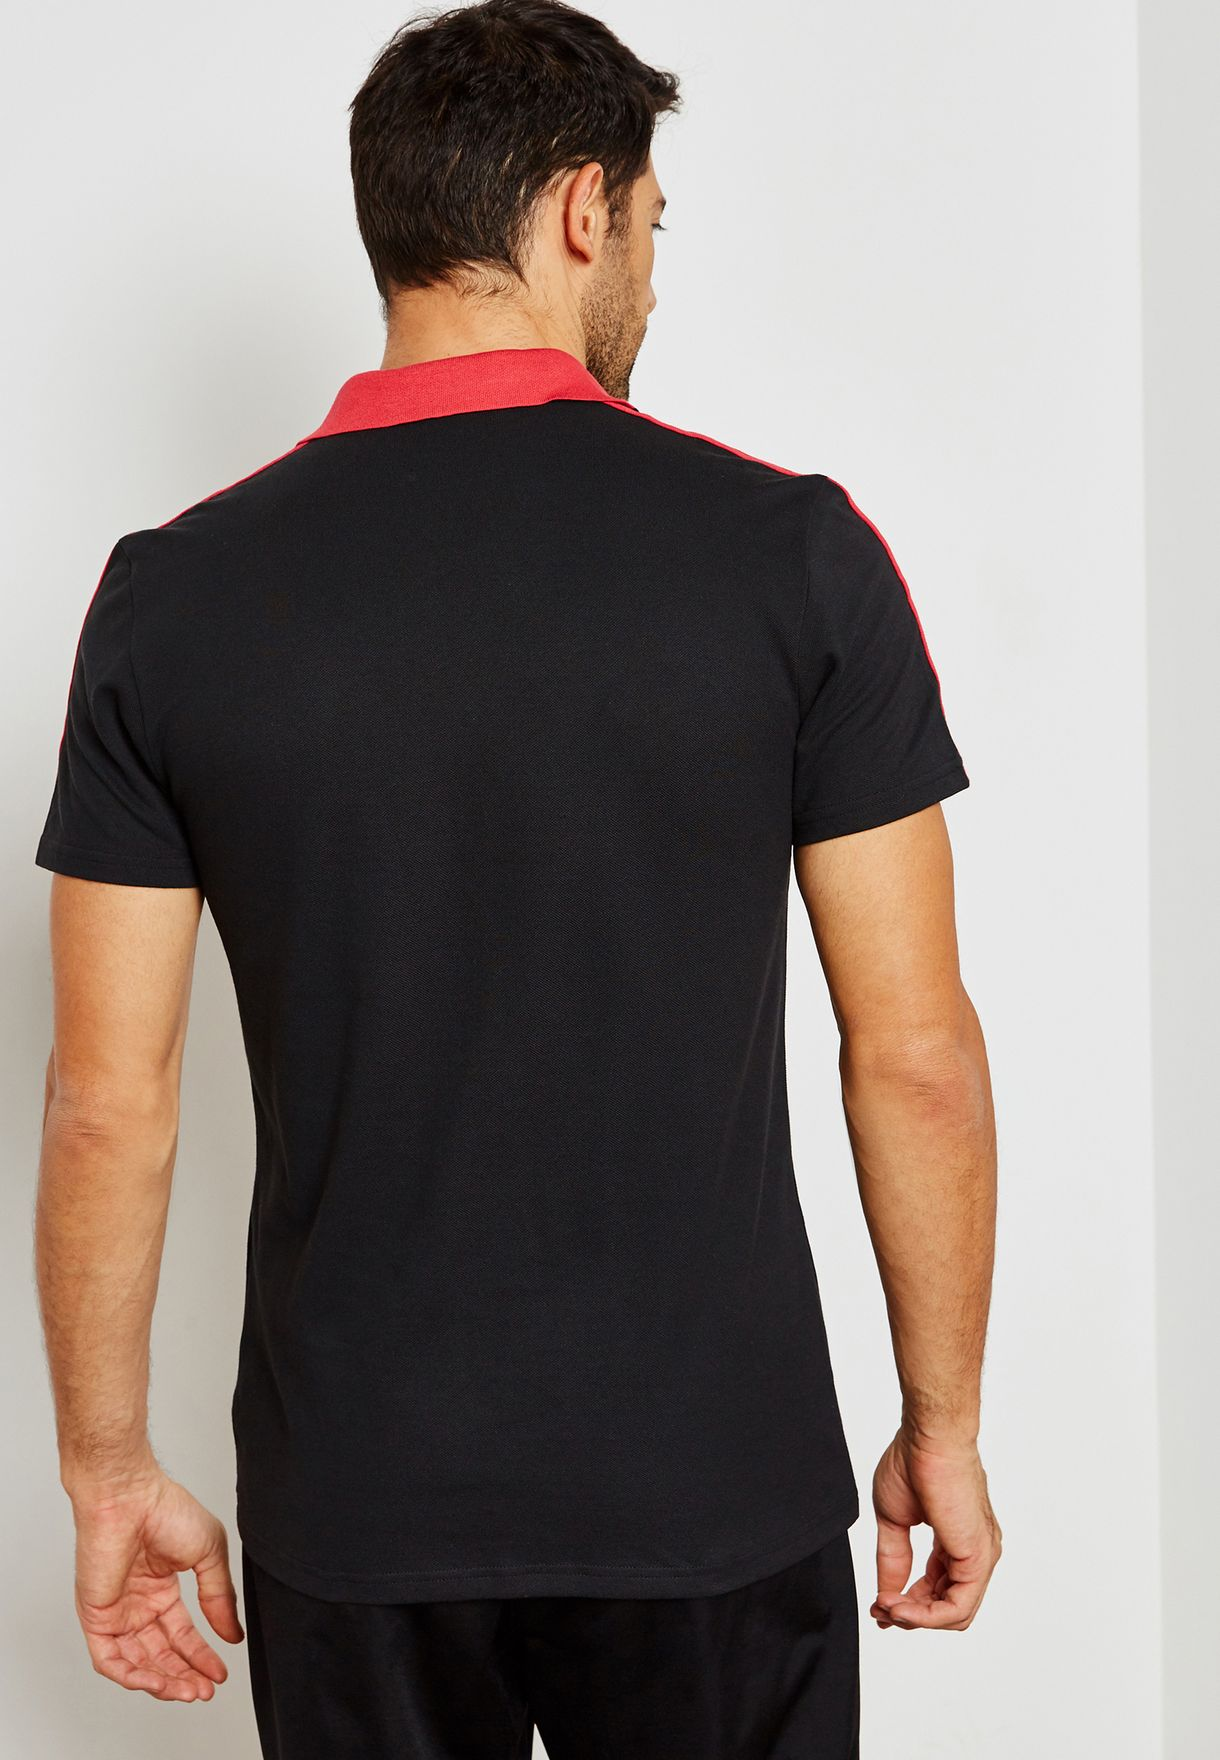 Manchester United Polo